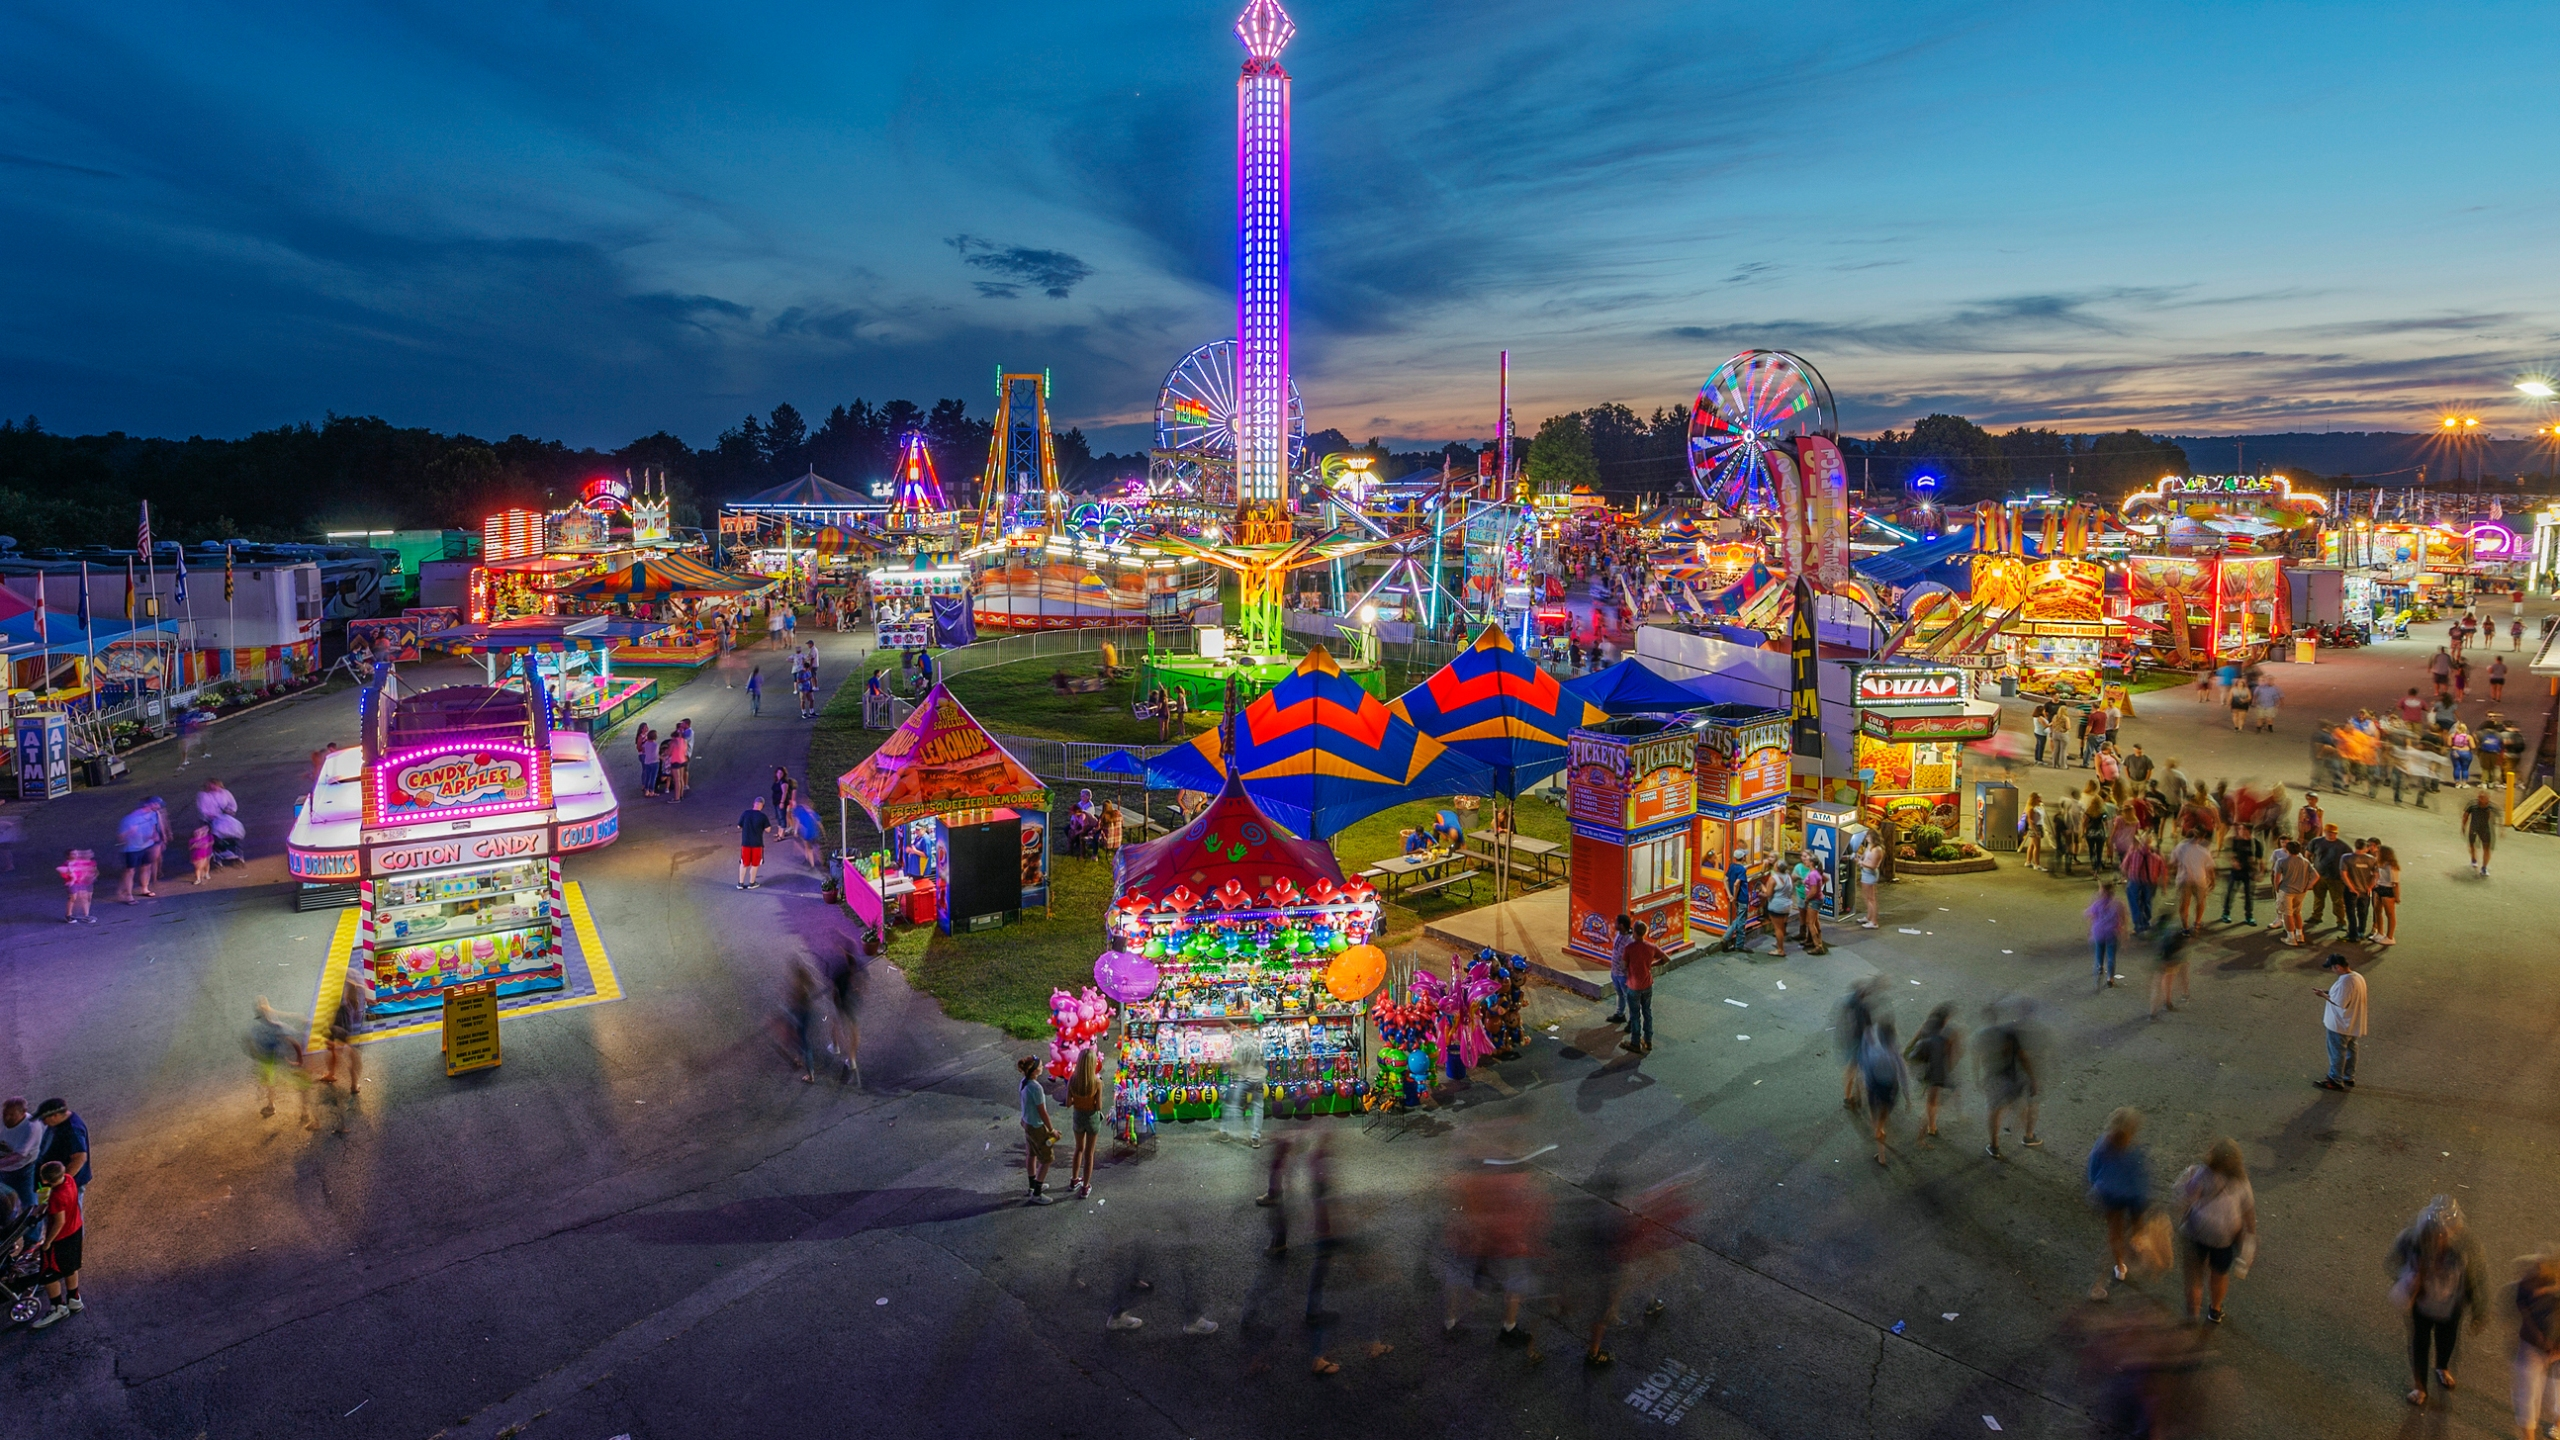 In this Aug. 9, 2018, file photo, fair-goers attend The State Fair of West Virginia at the State Fairgrounds in Fairlea, W.Va. West Virginia has seen a higher percentage of residents depart than any other state in the past decade. (Craig Hudson/Charleston Gazette-Mail via AP, File)